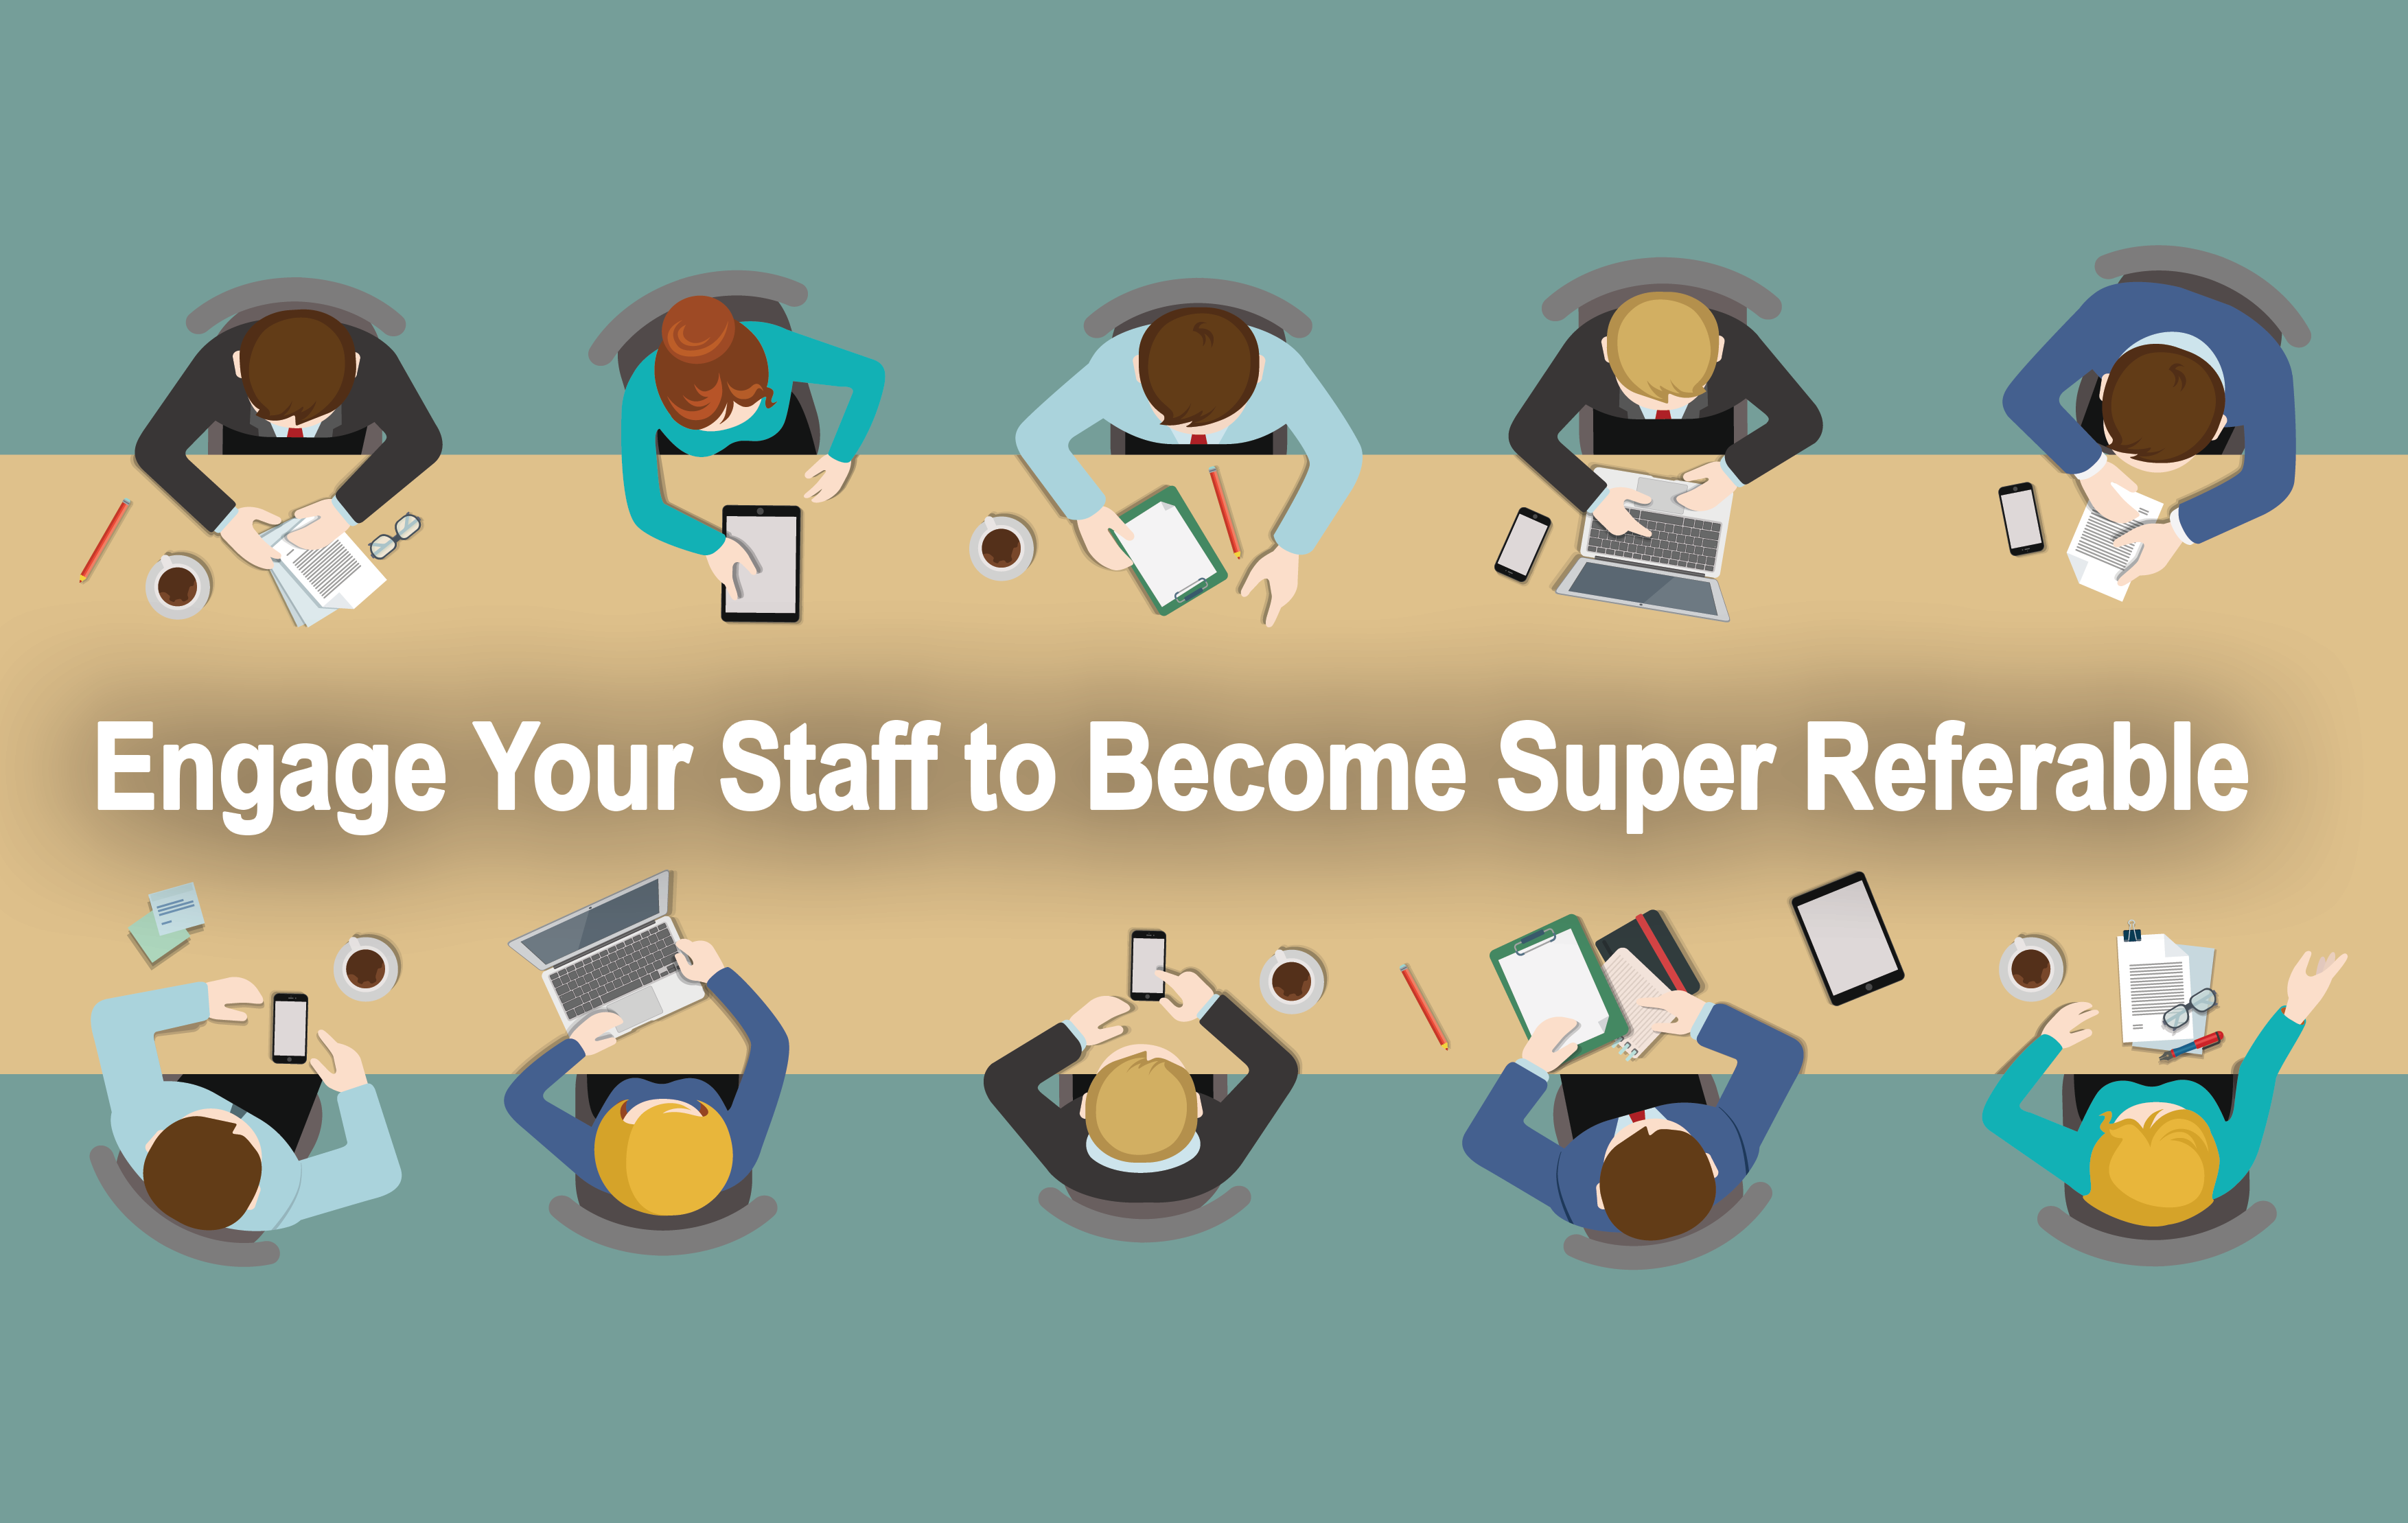 Engage Your Staff and Get More Referrals